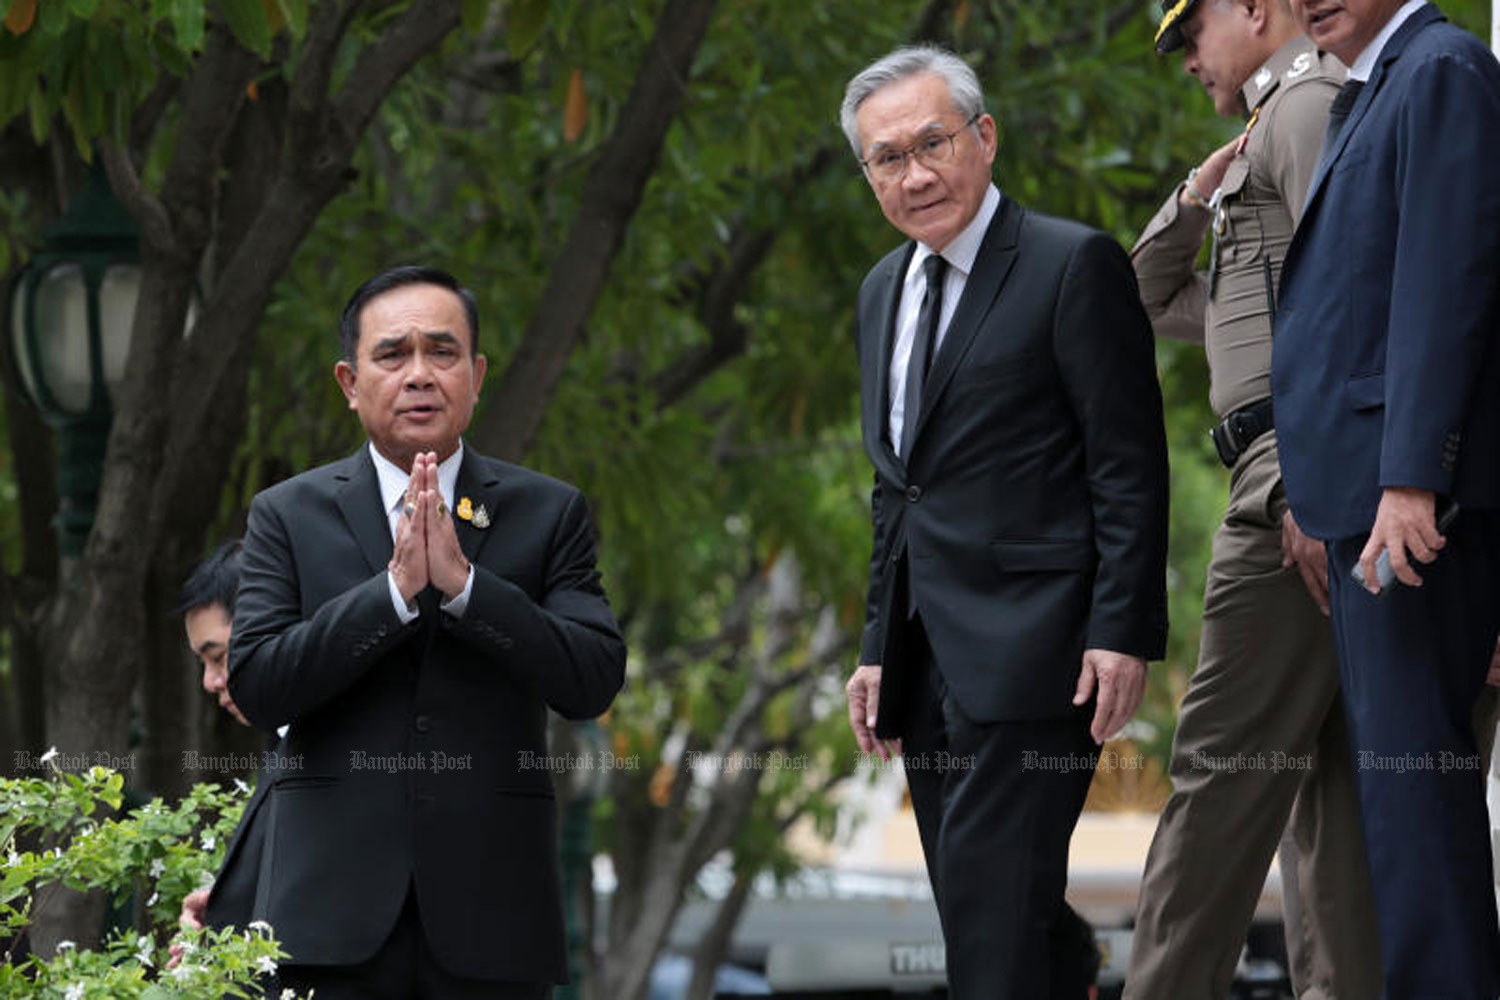 Prime Minister Prayut Chan-o-cha expresses his gratitude to the people before a band of reporters at Government House on Thursday, following the joint session vote on Wednesday night which saw him return to power as premier. (Photo by Chanat Katanyu)